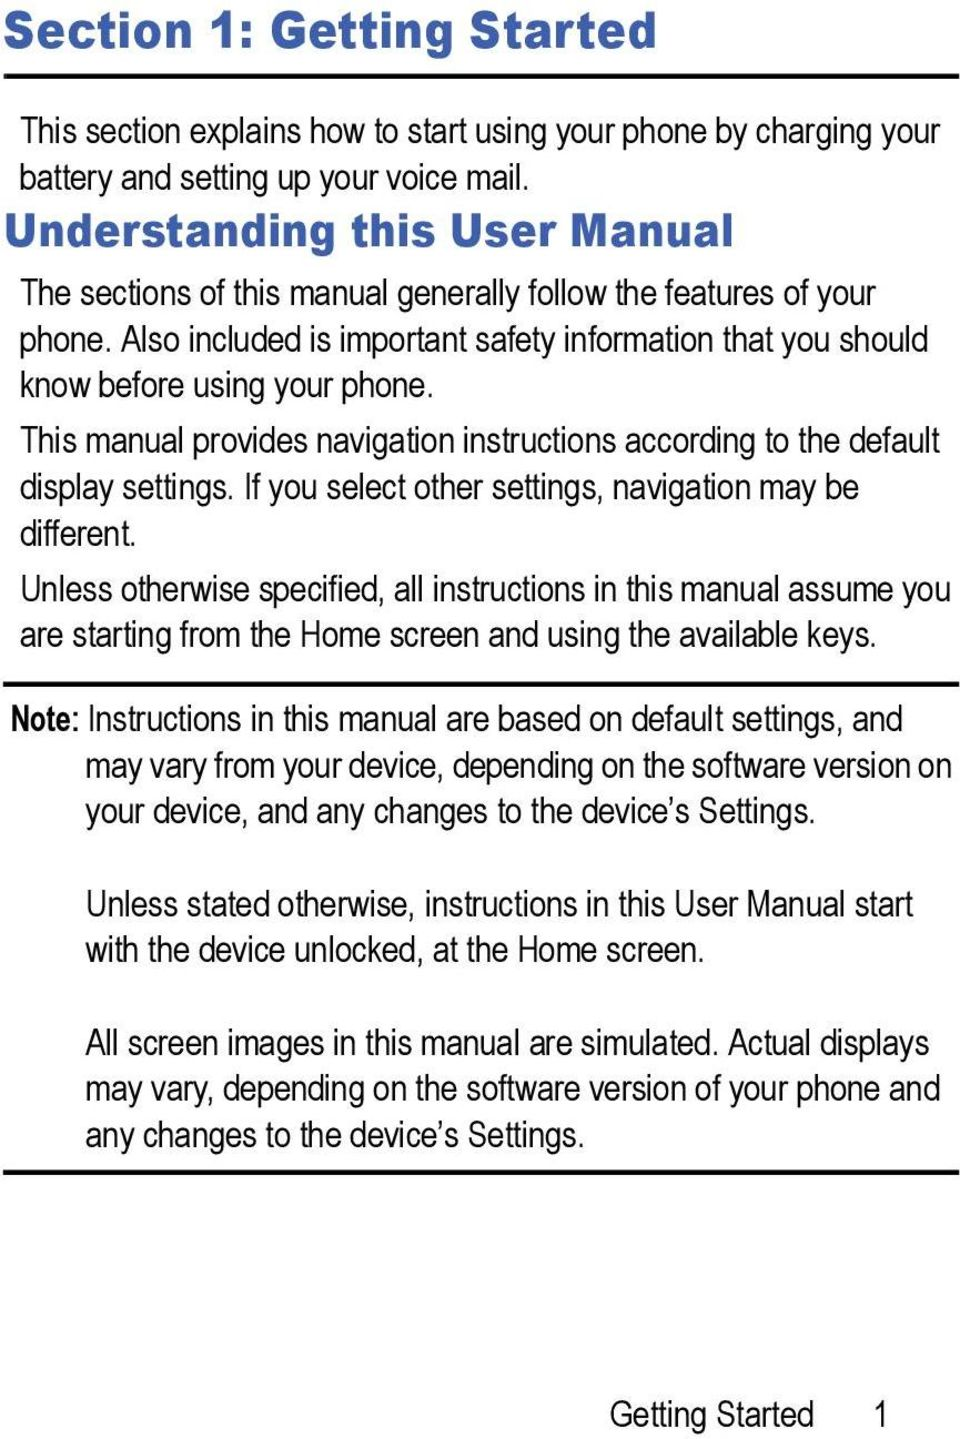 This manual provides navigation instructions according to the default display settings. If you select other settings, navigation may be different.